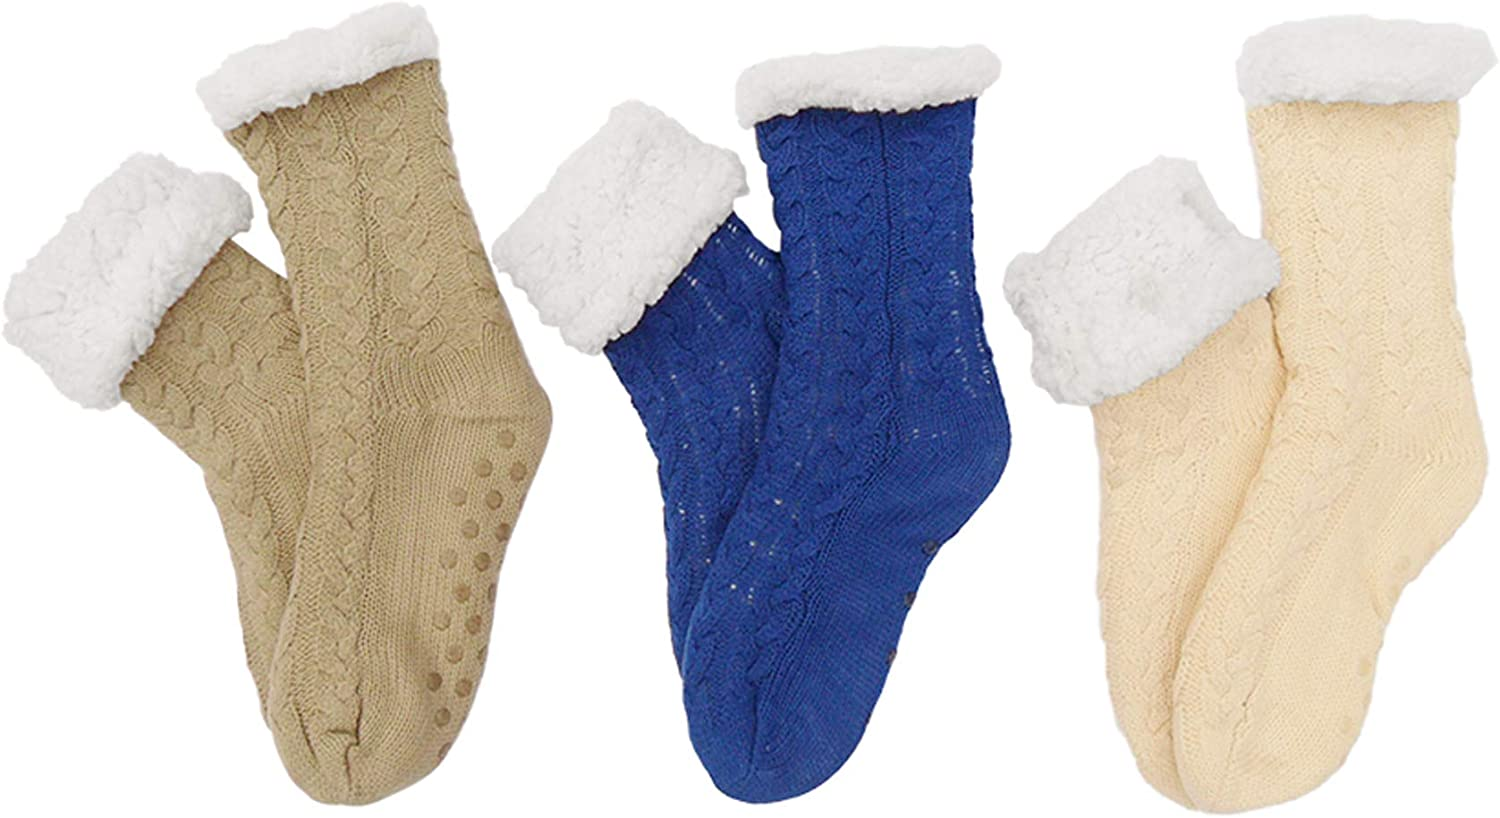 Manufacturer direct delivery Summer Essential Special Sherpa Slipper Socks Me - for Teens Ultra-Cheap Deals Fun